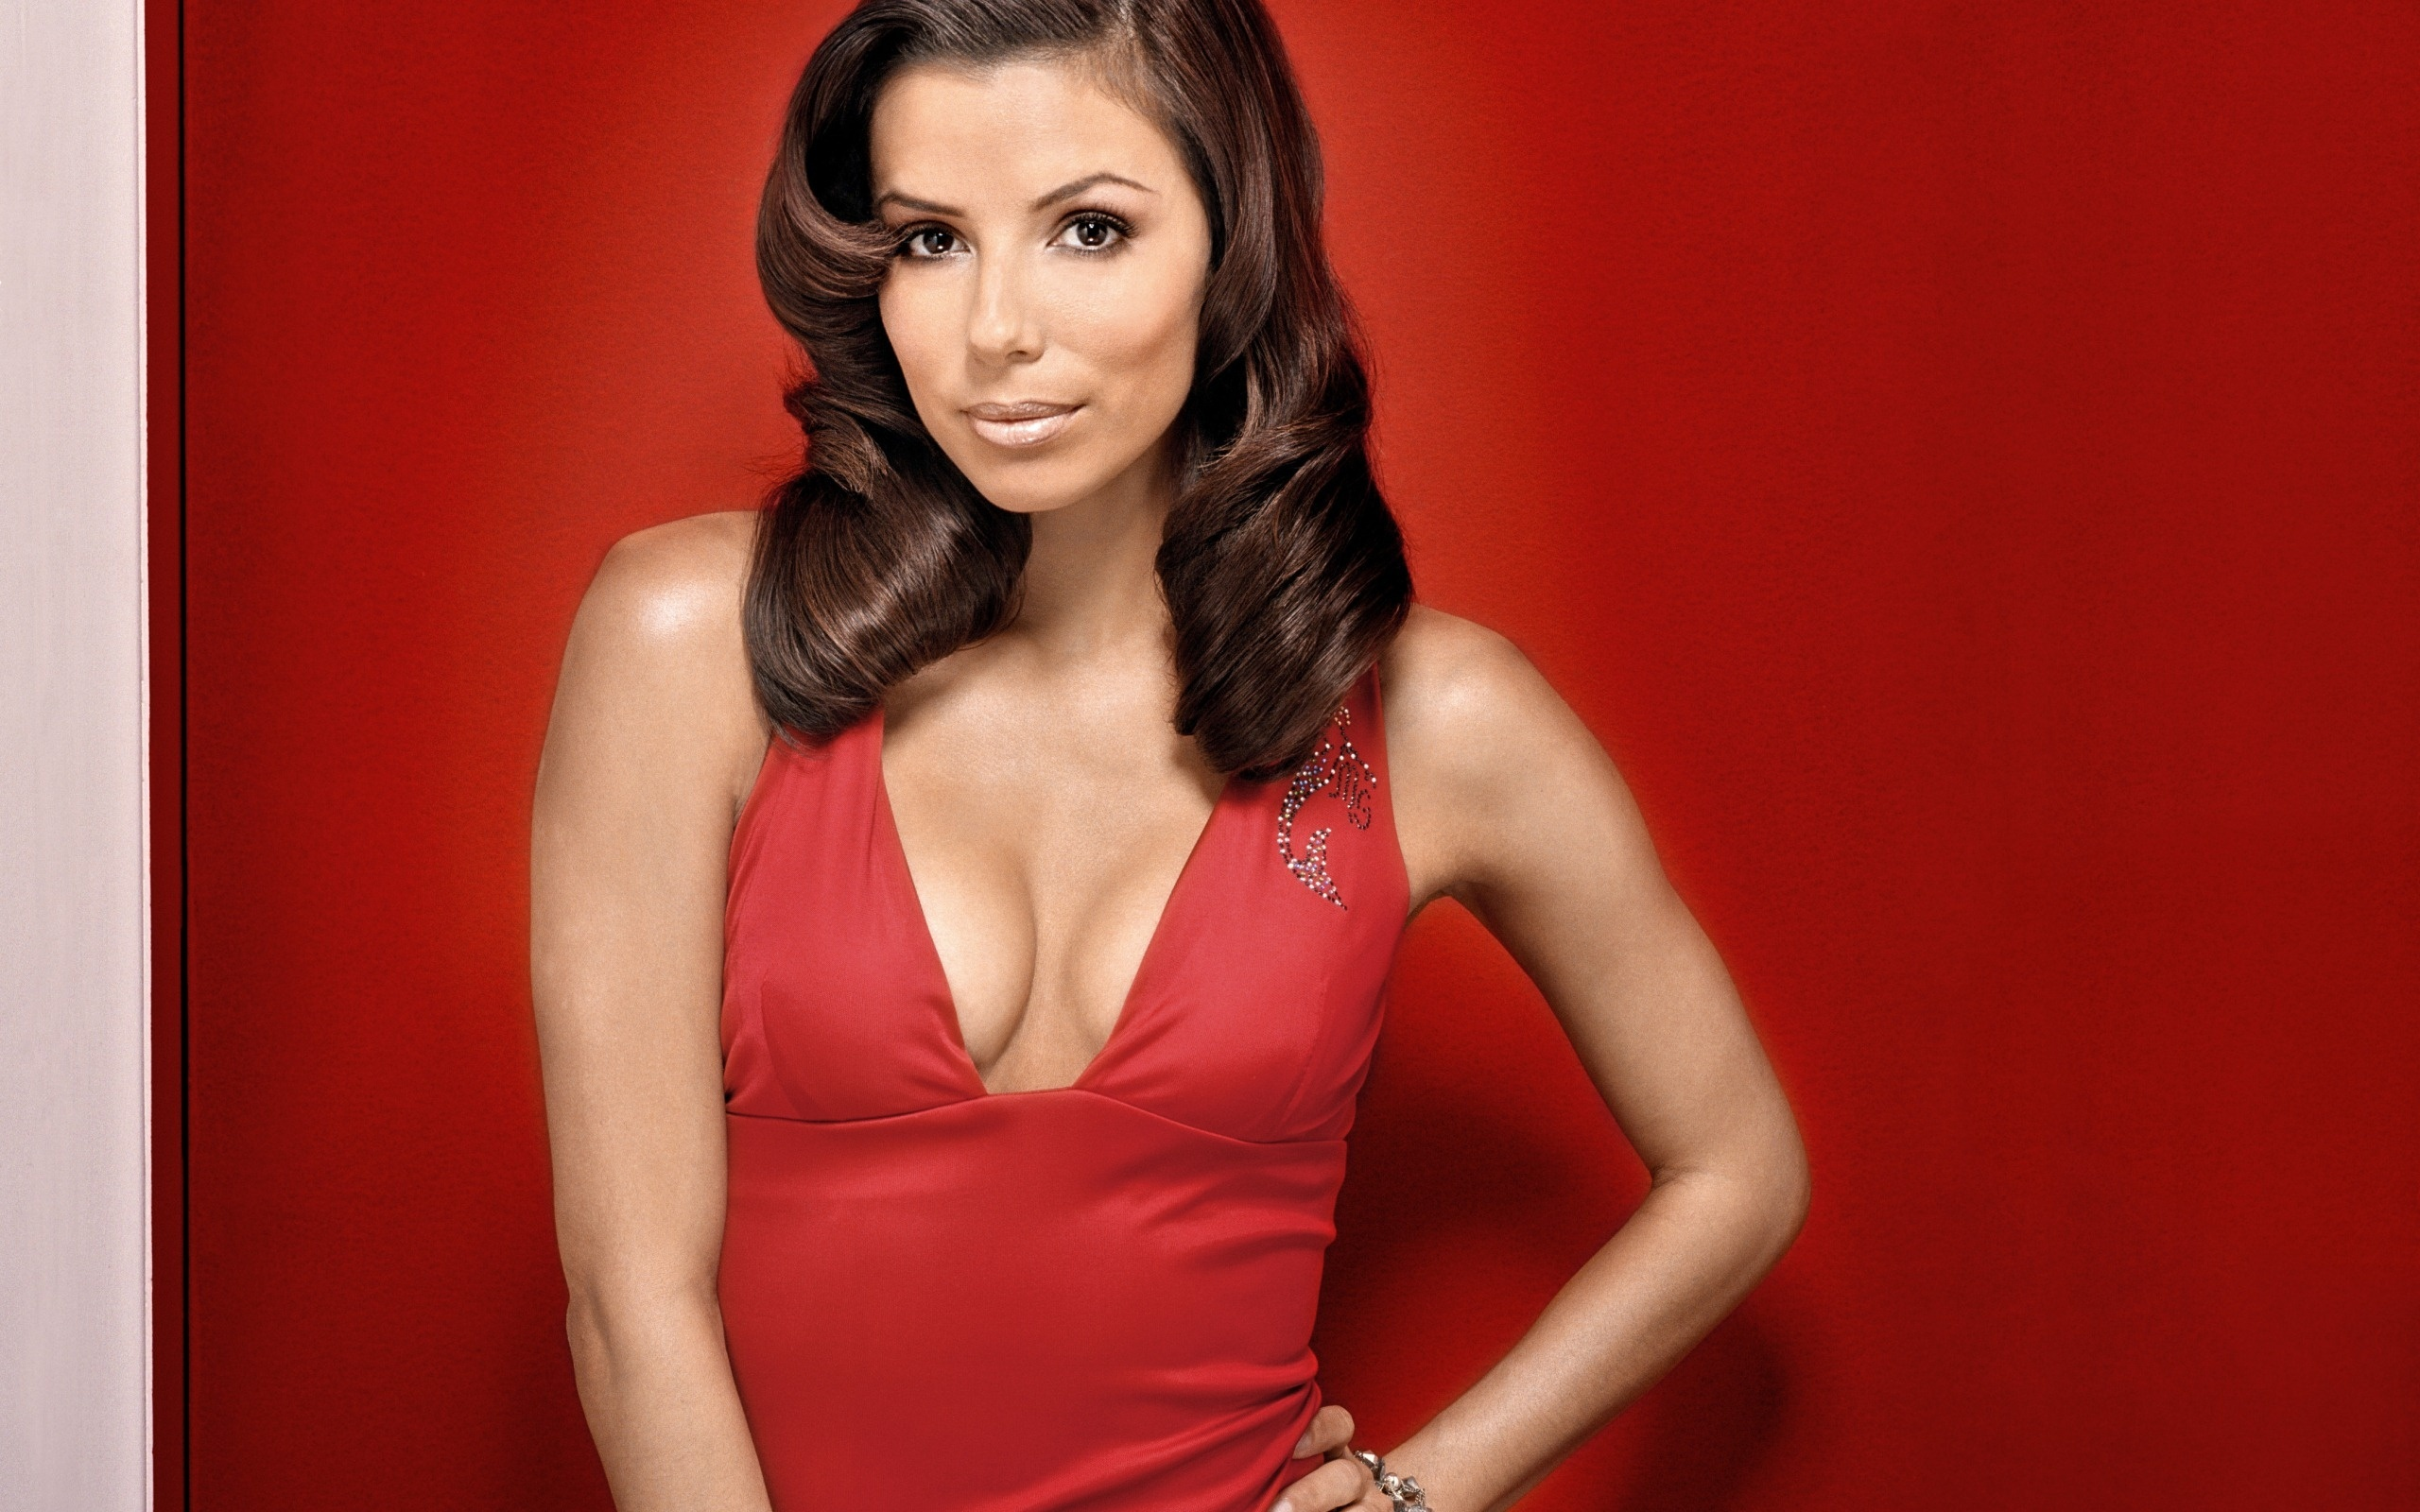 Iphone 5 Wallpaper For Girls Eva Longoria Hot And Sexy Hd Wallpapers All Hd Wallpapers